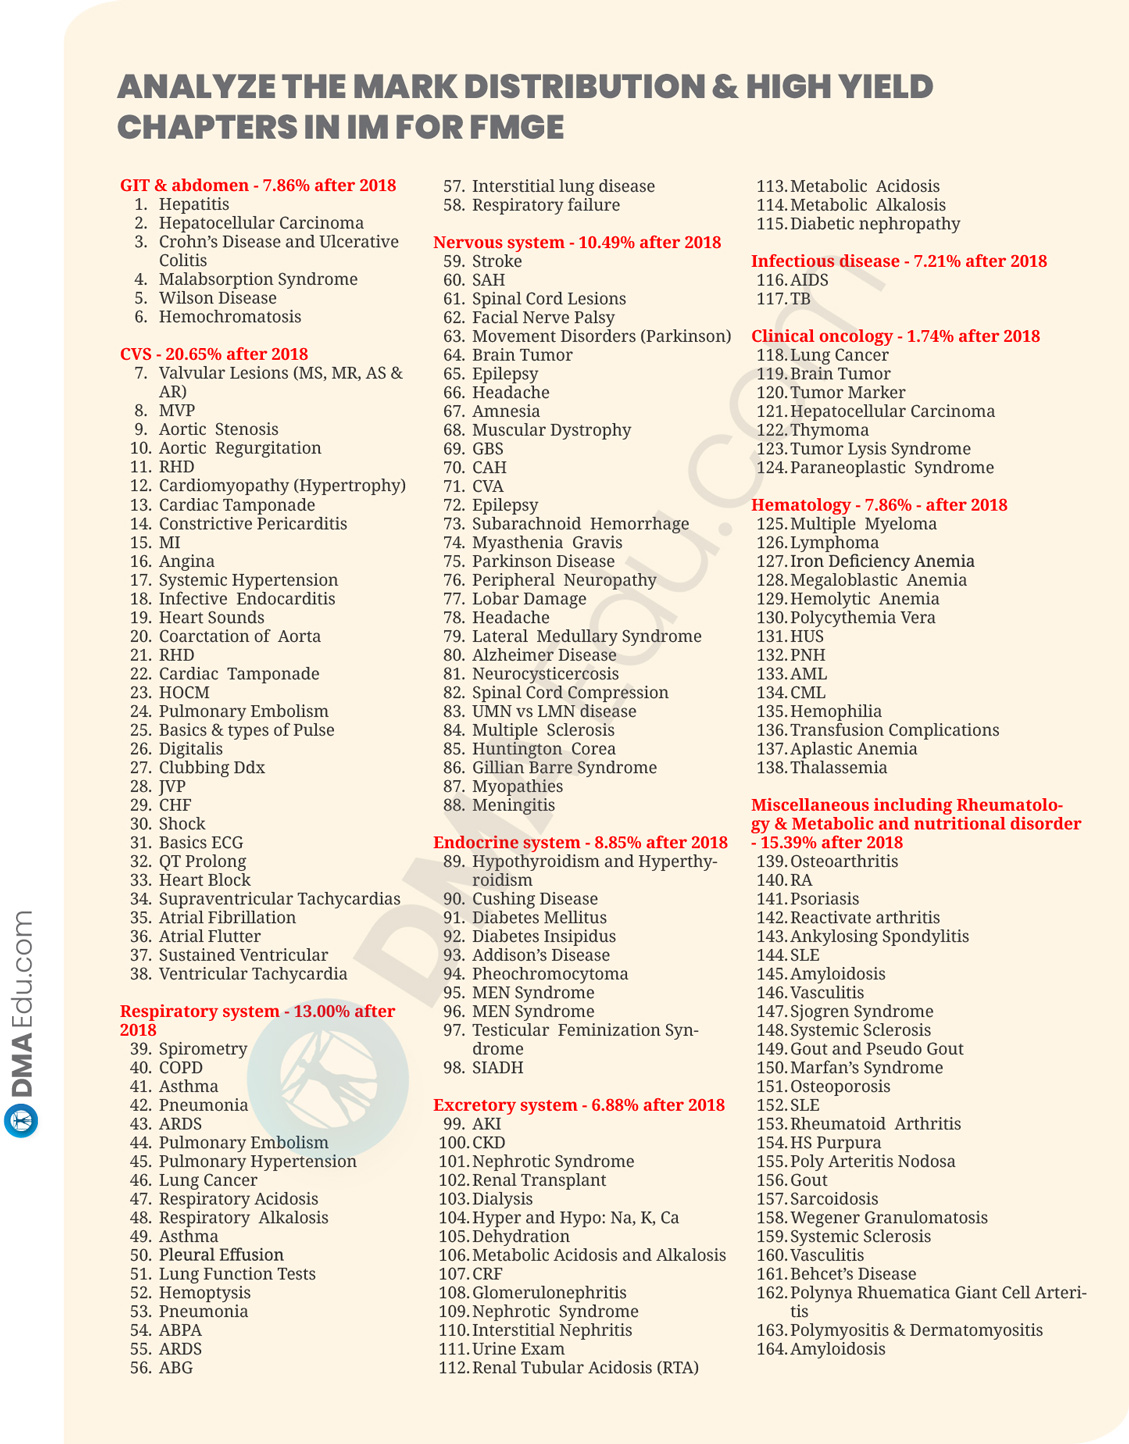 19 SUBJECTS HIGH YILD CHAPTER4 How to Prepare Medicine (IM) for FMGE 2020? FMGE, FMGE preparation, FMGE Study Plan, FMGE Tips